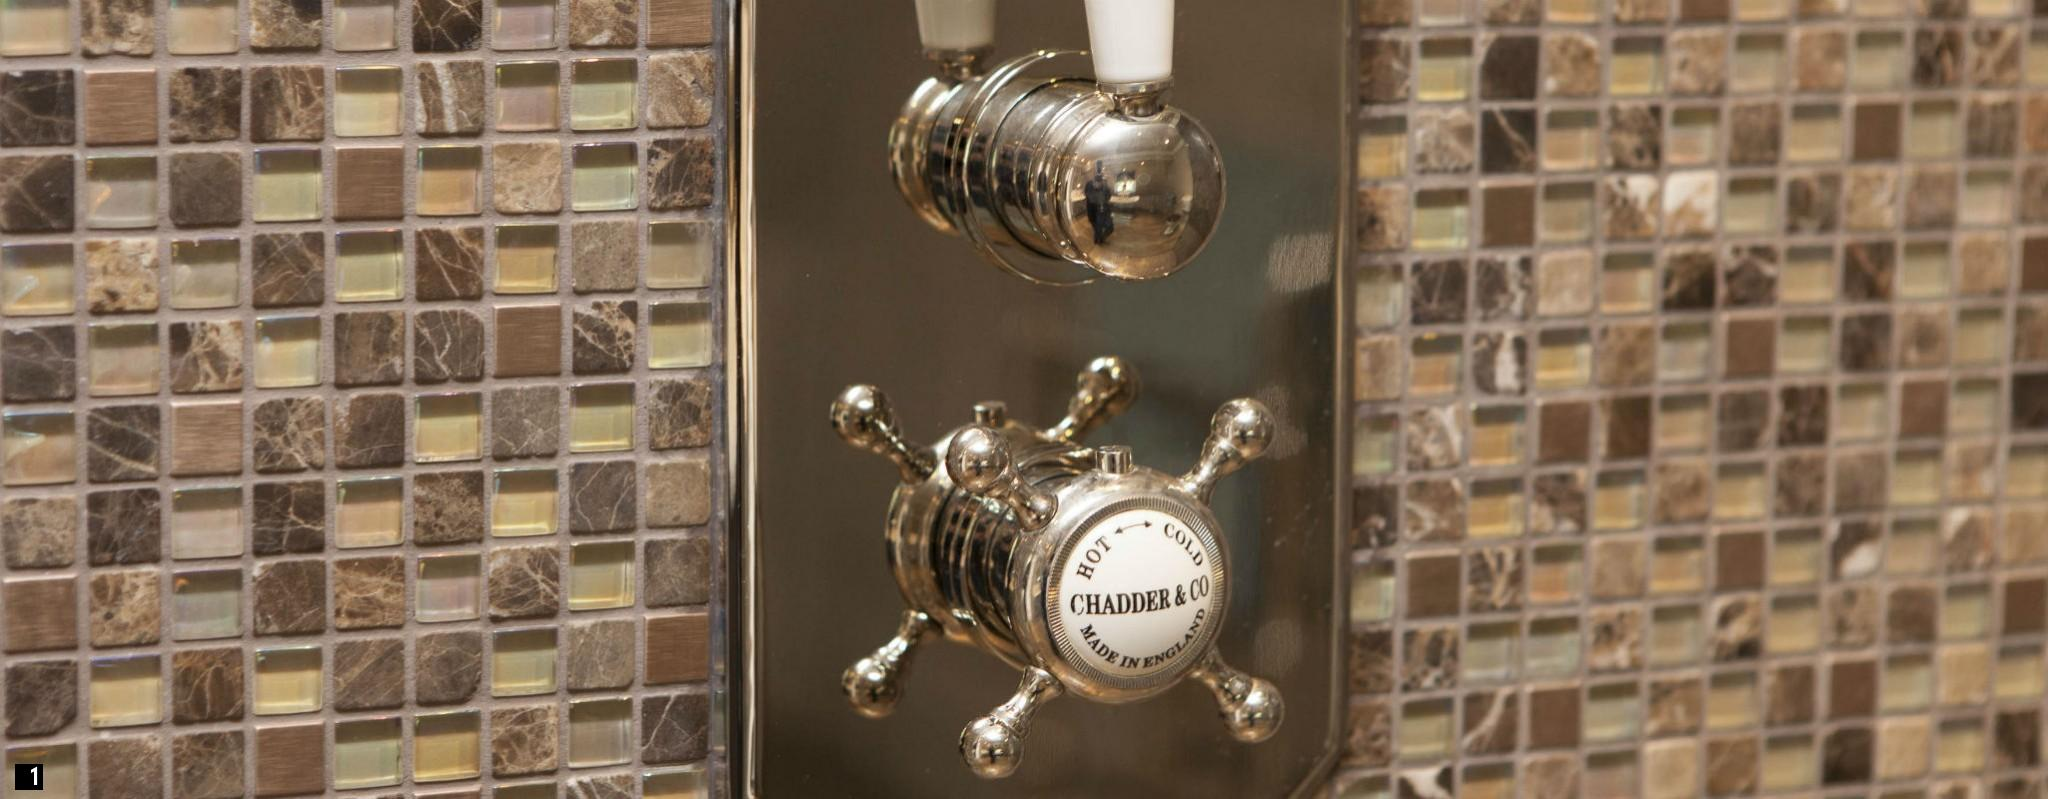 Chadder Traditional Shower Control, Nickel Finish , Vintage Shower Control